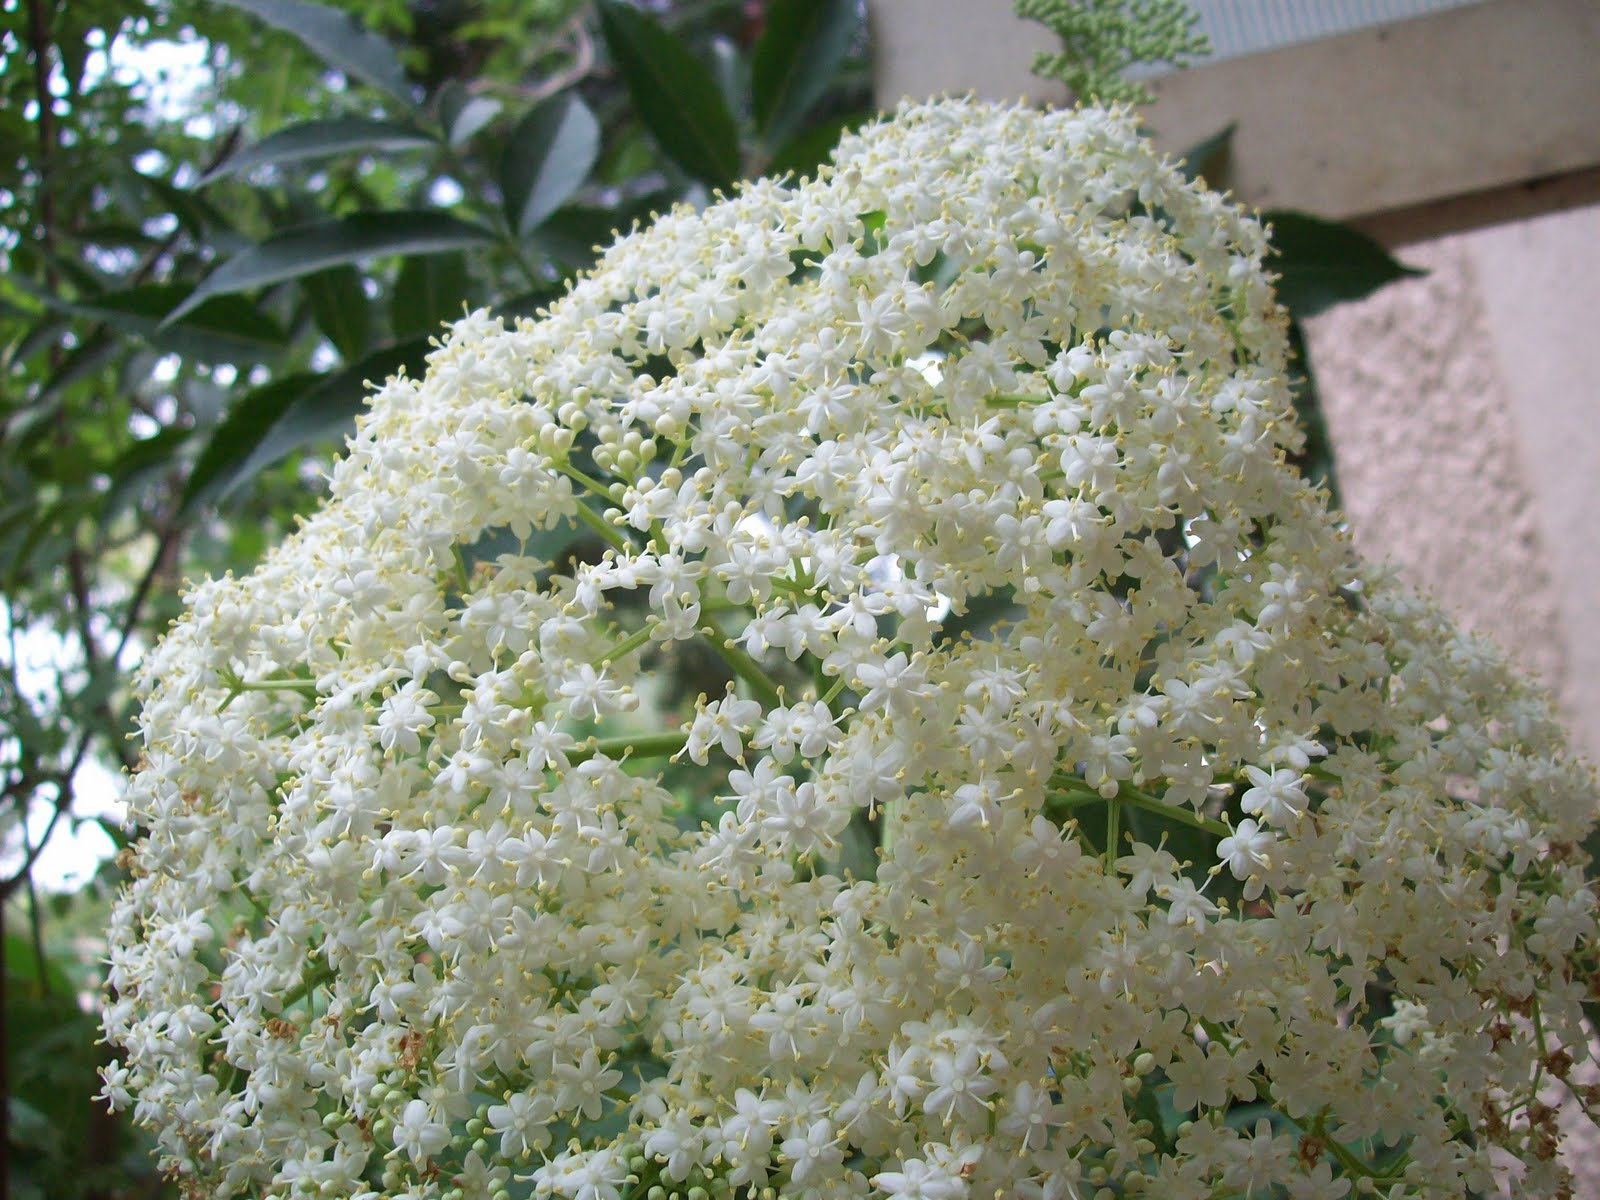 White scented flowers images flower decoration ideas gardentropics todays flowers the elderberry bush is full of these huge clusters of tiny white flowers mightylinksfo